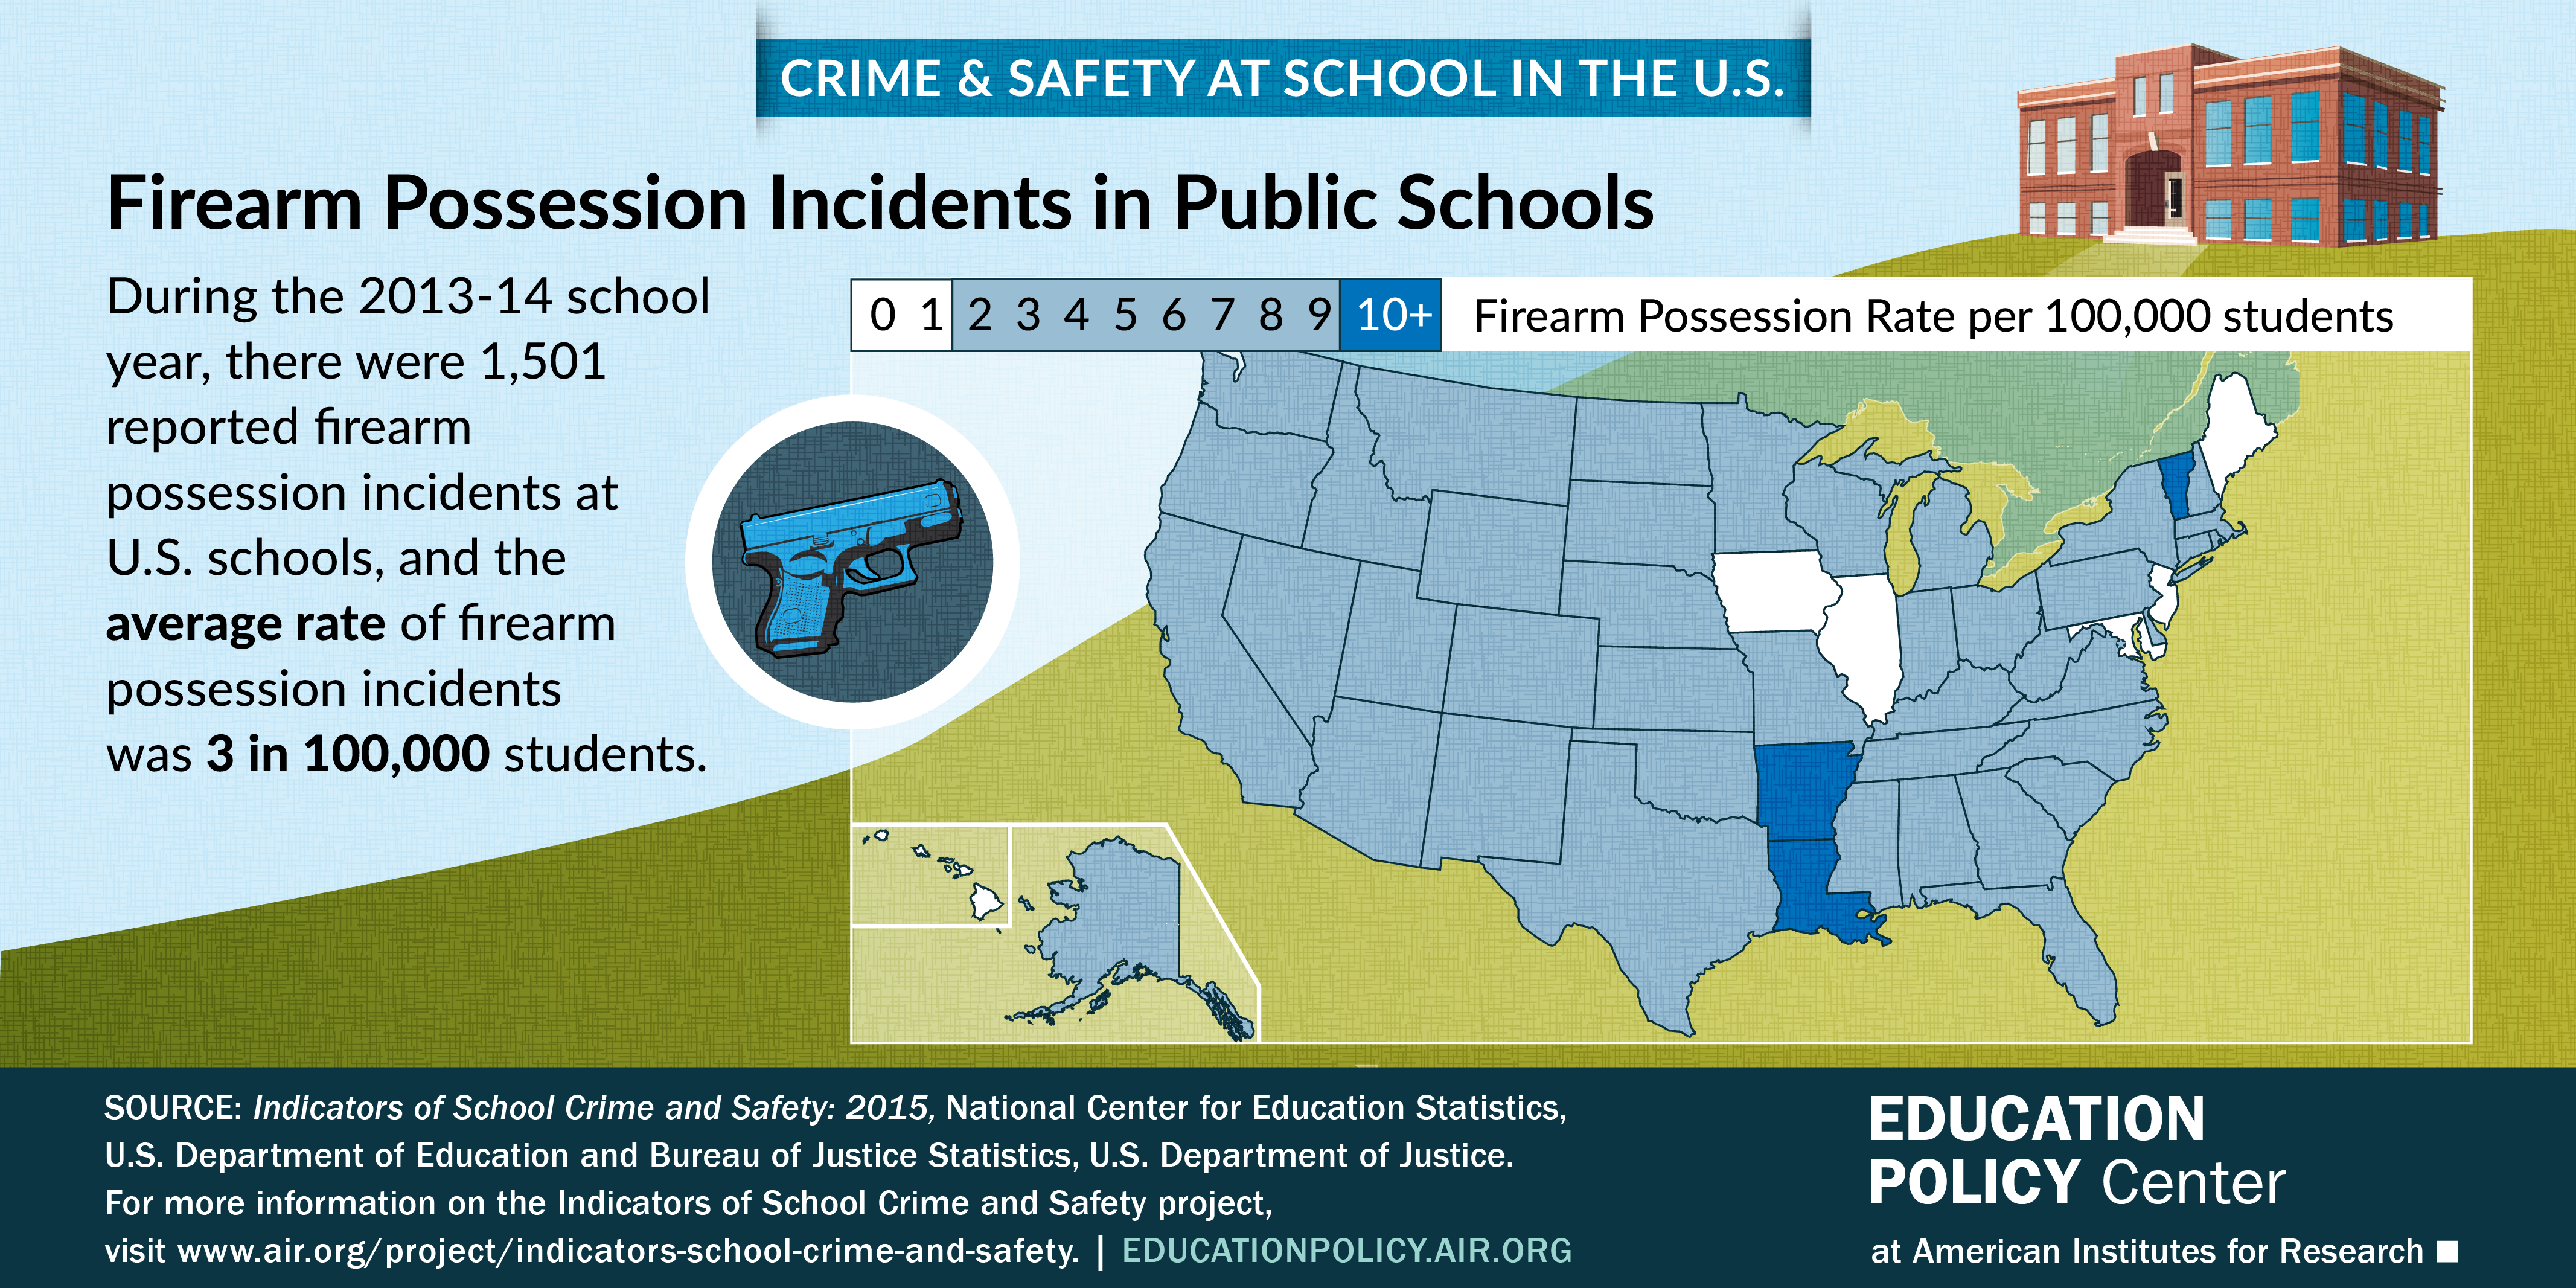 Infographic shows the firearm possession incident rate at U.S. Schools per state.